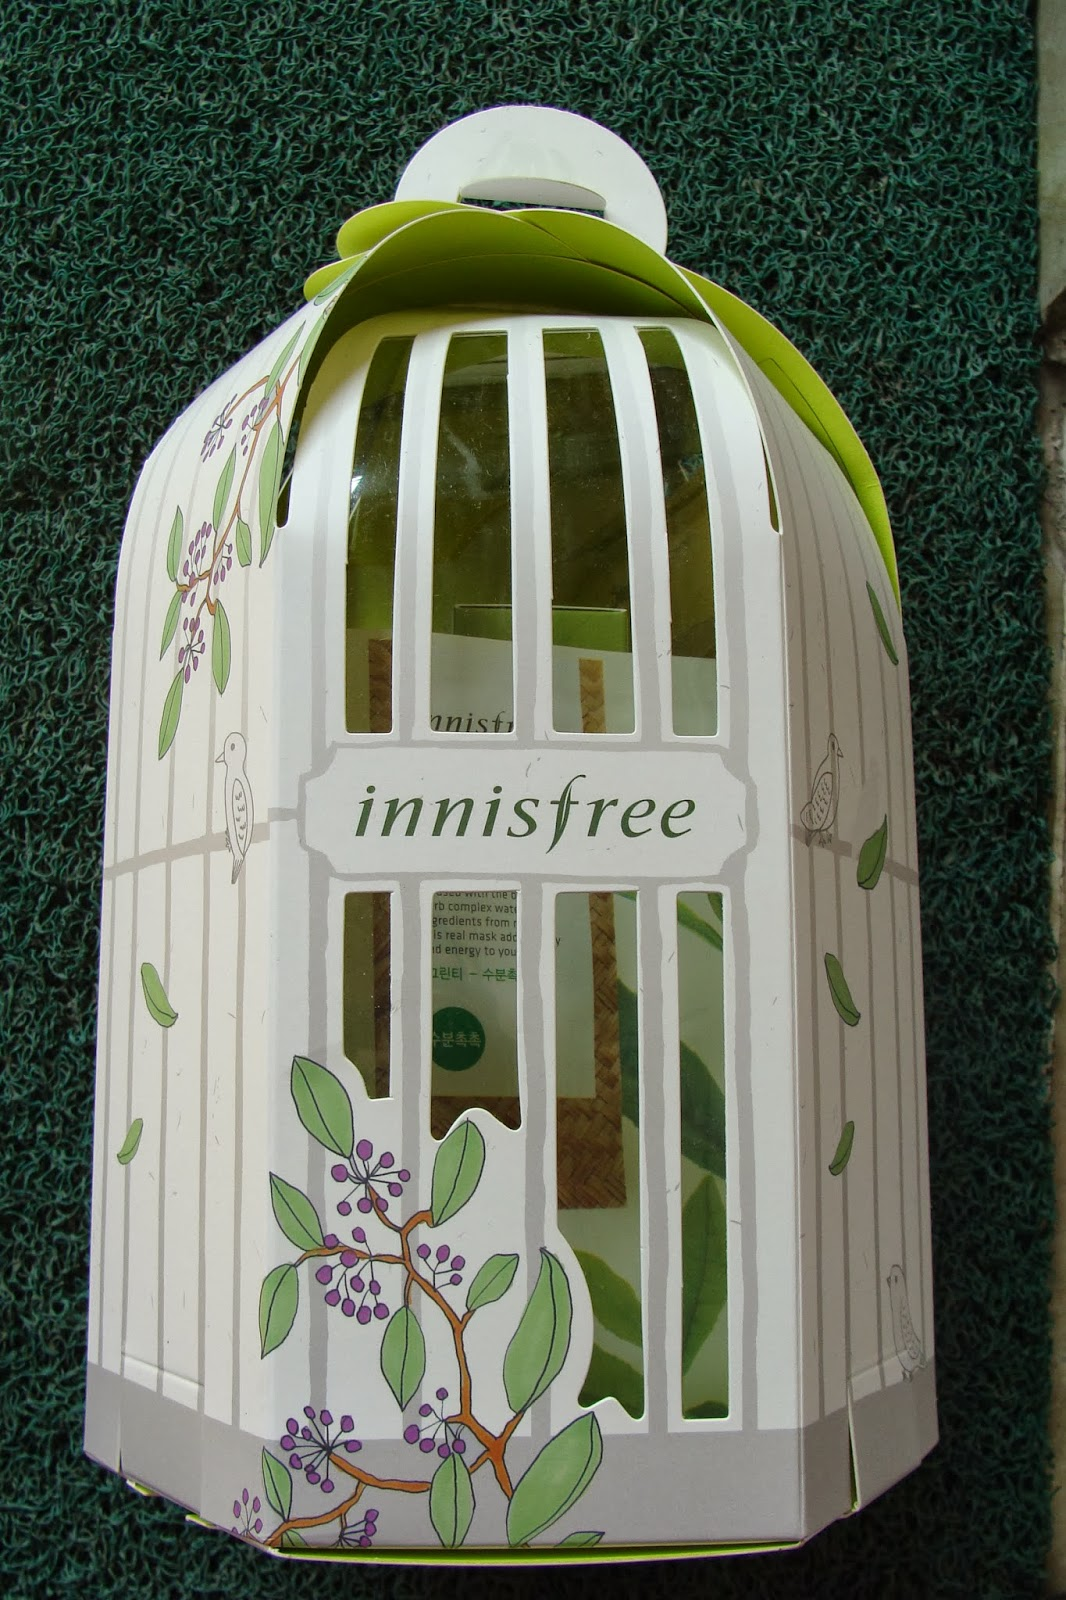 My Cute Innisfree Cage